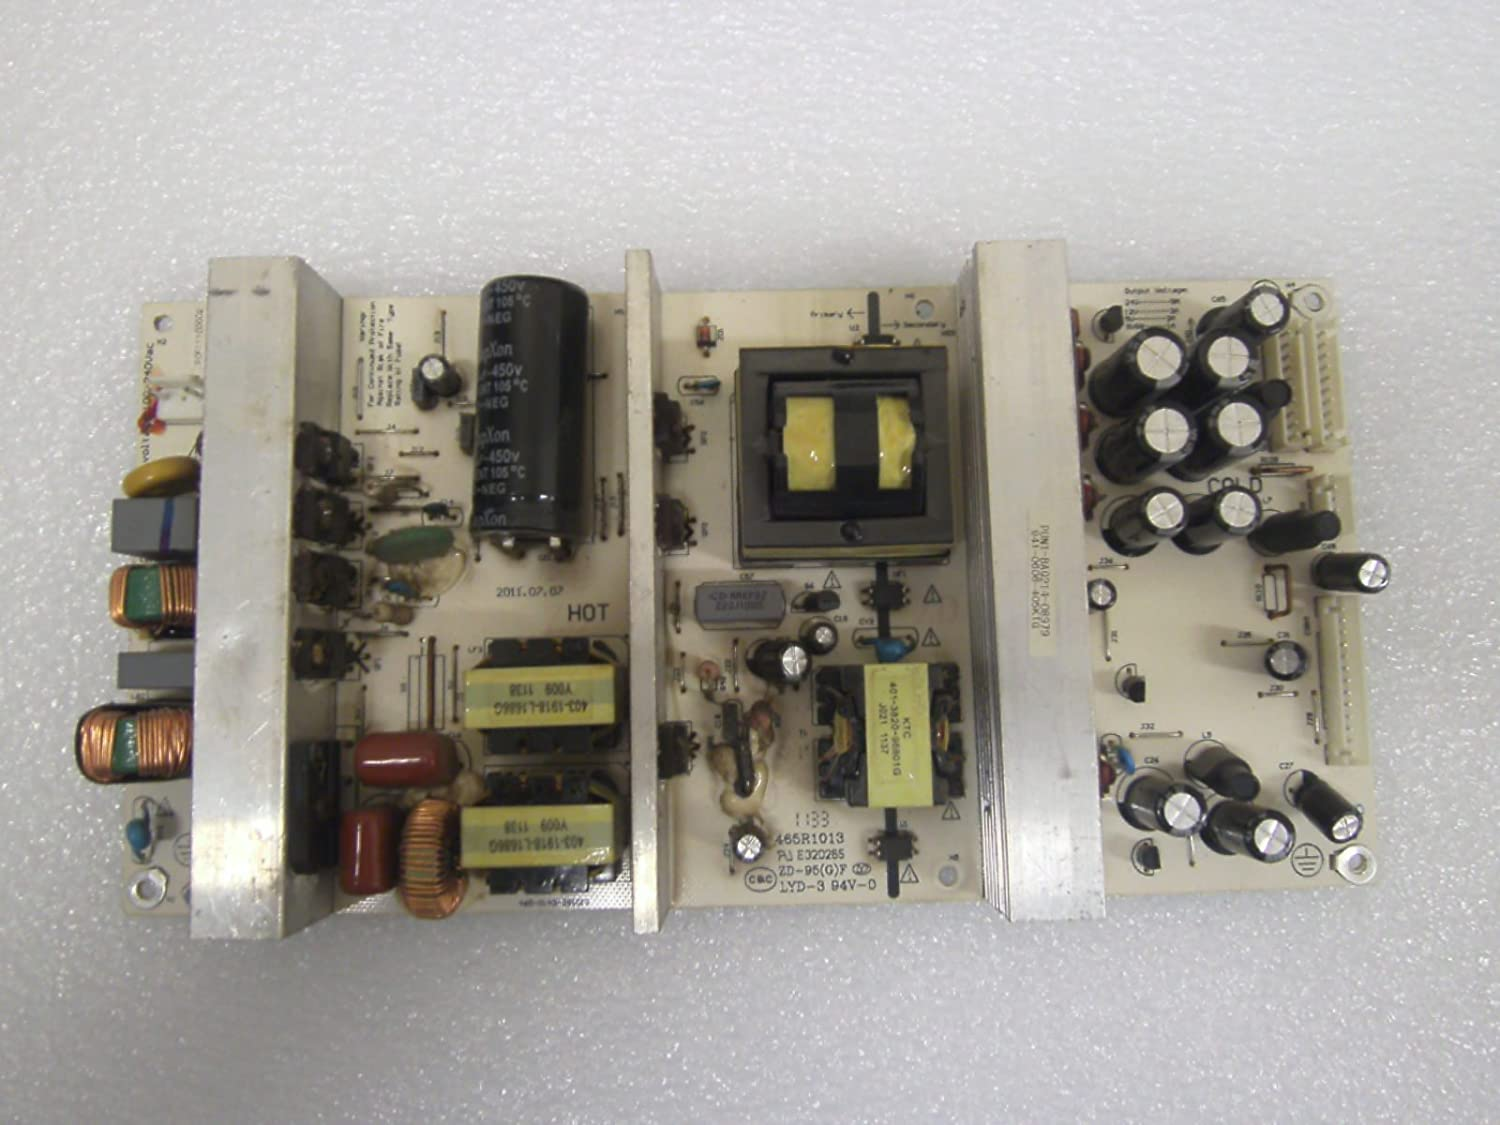 WESTINGHOUSE VR-4030 POWER SUPPLY 465R1013